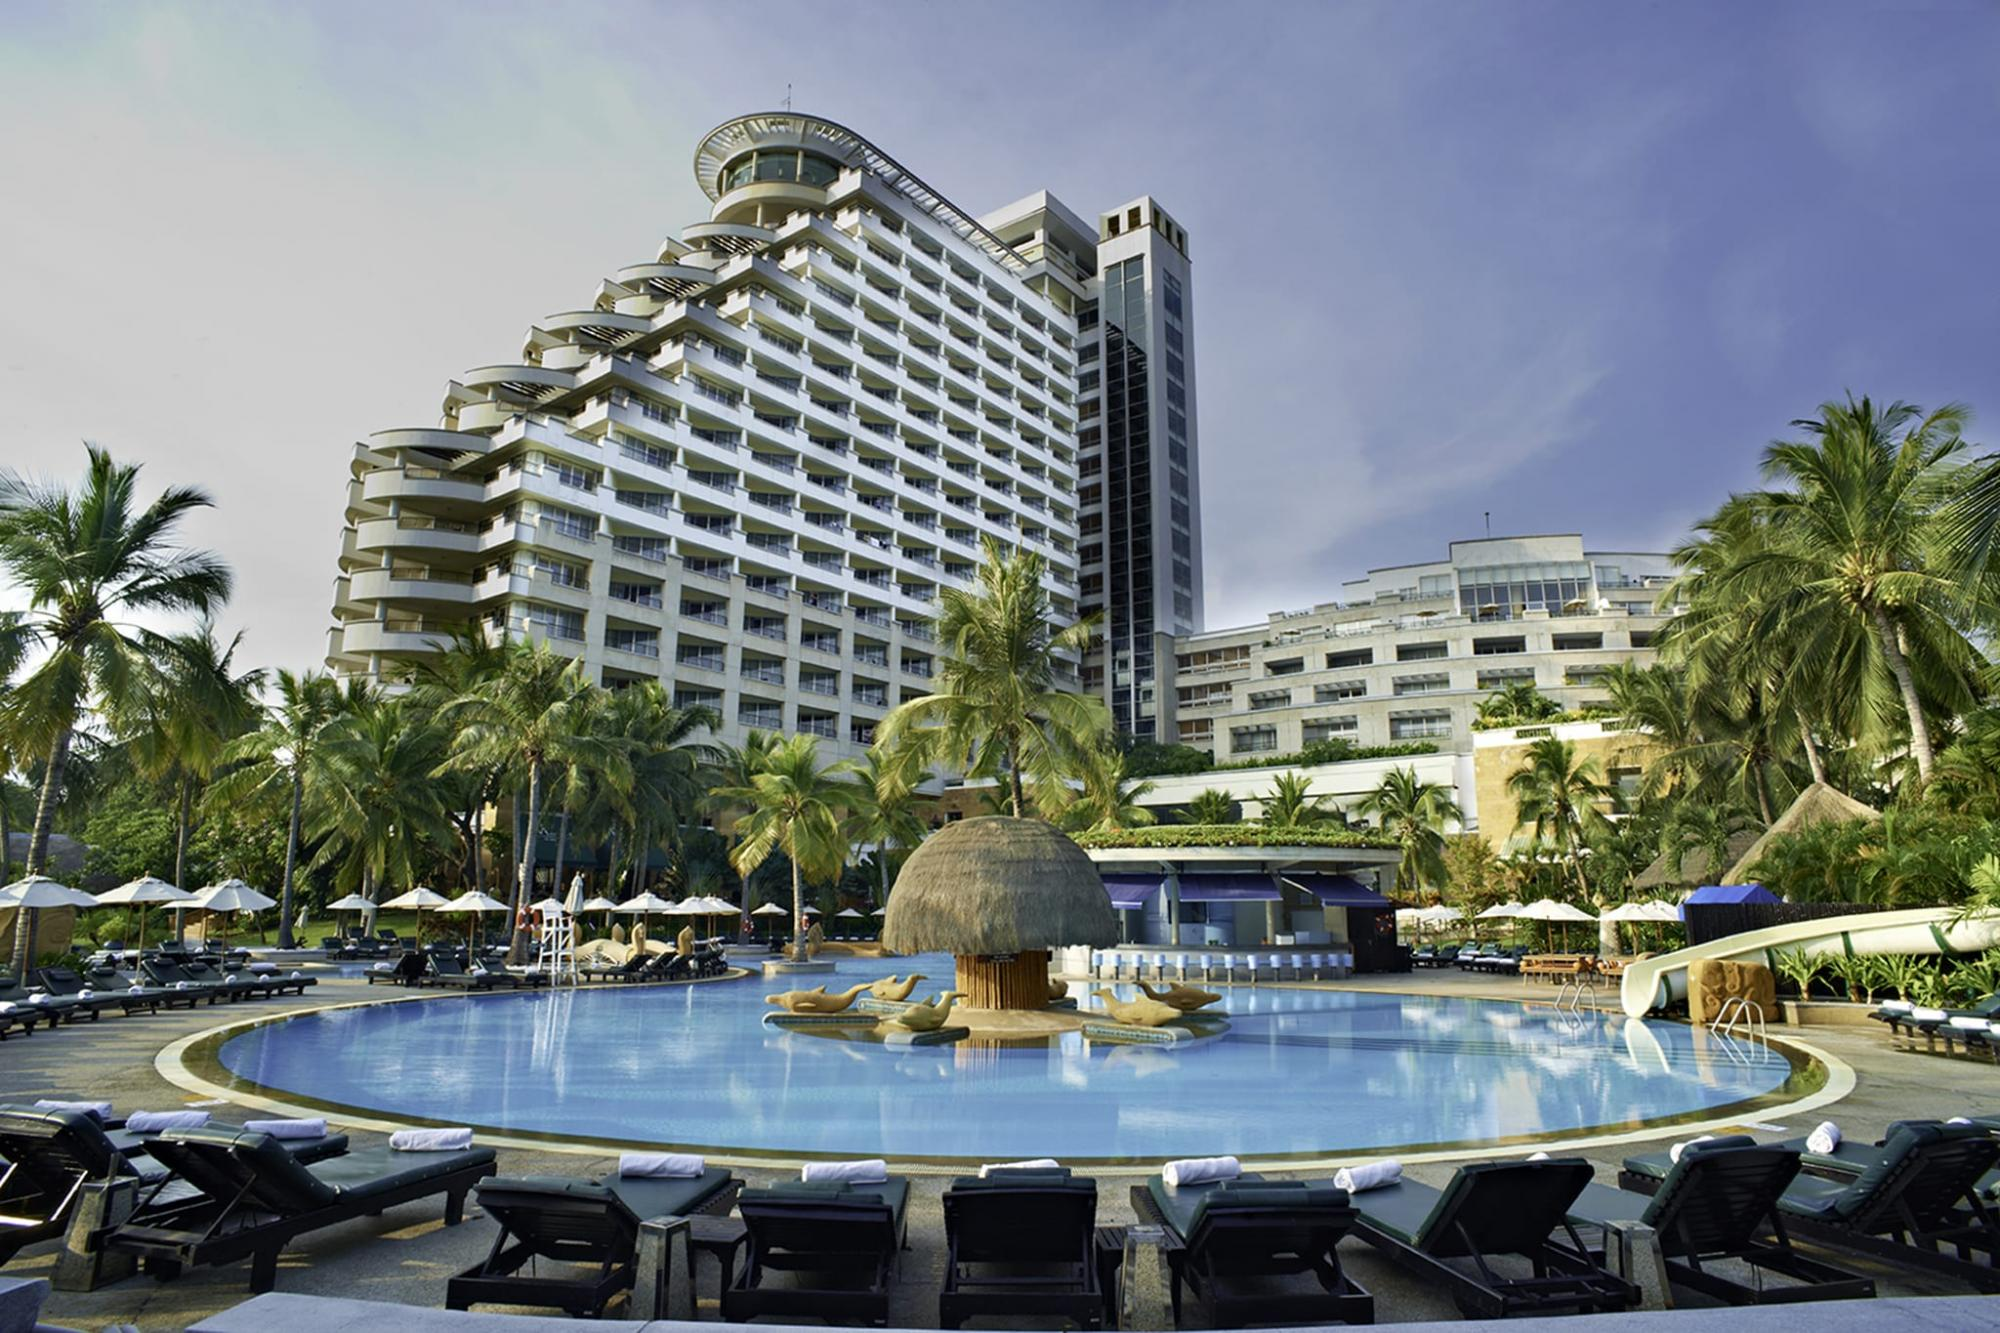 The Hilton Hua Hin Resort and Spa's picturesque hotel situated in stunning Hua Hin.